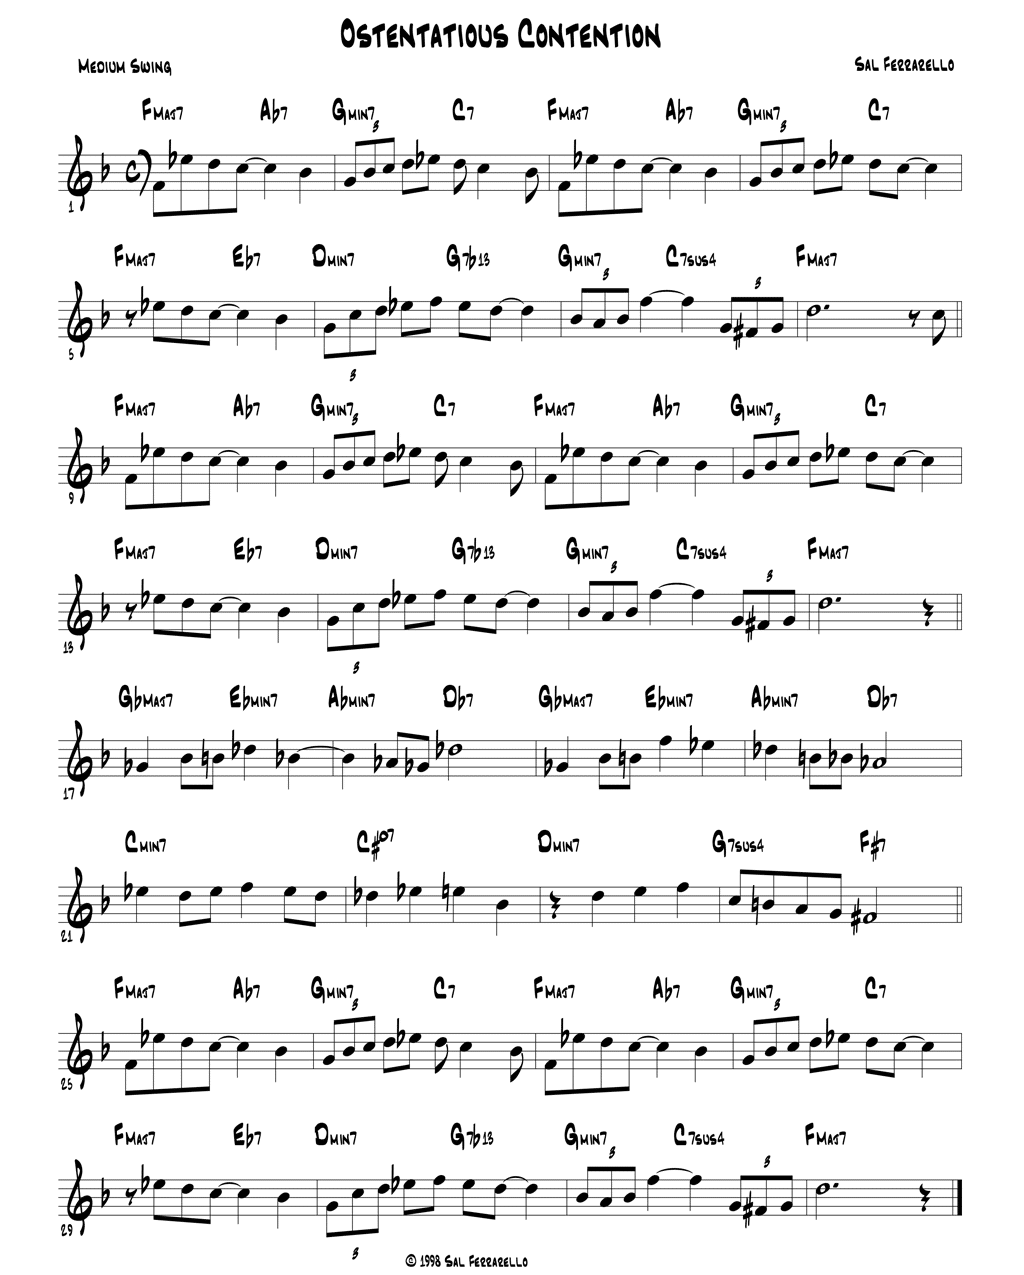 Ostentatious Contention music lead sheet.